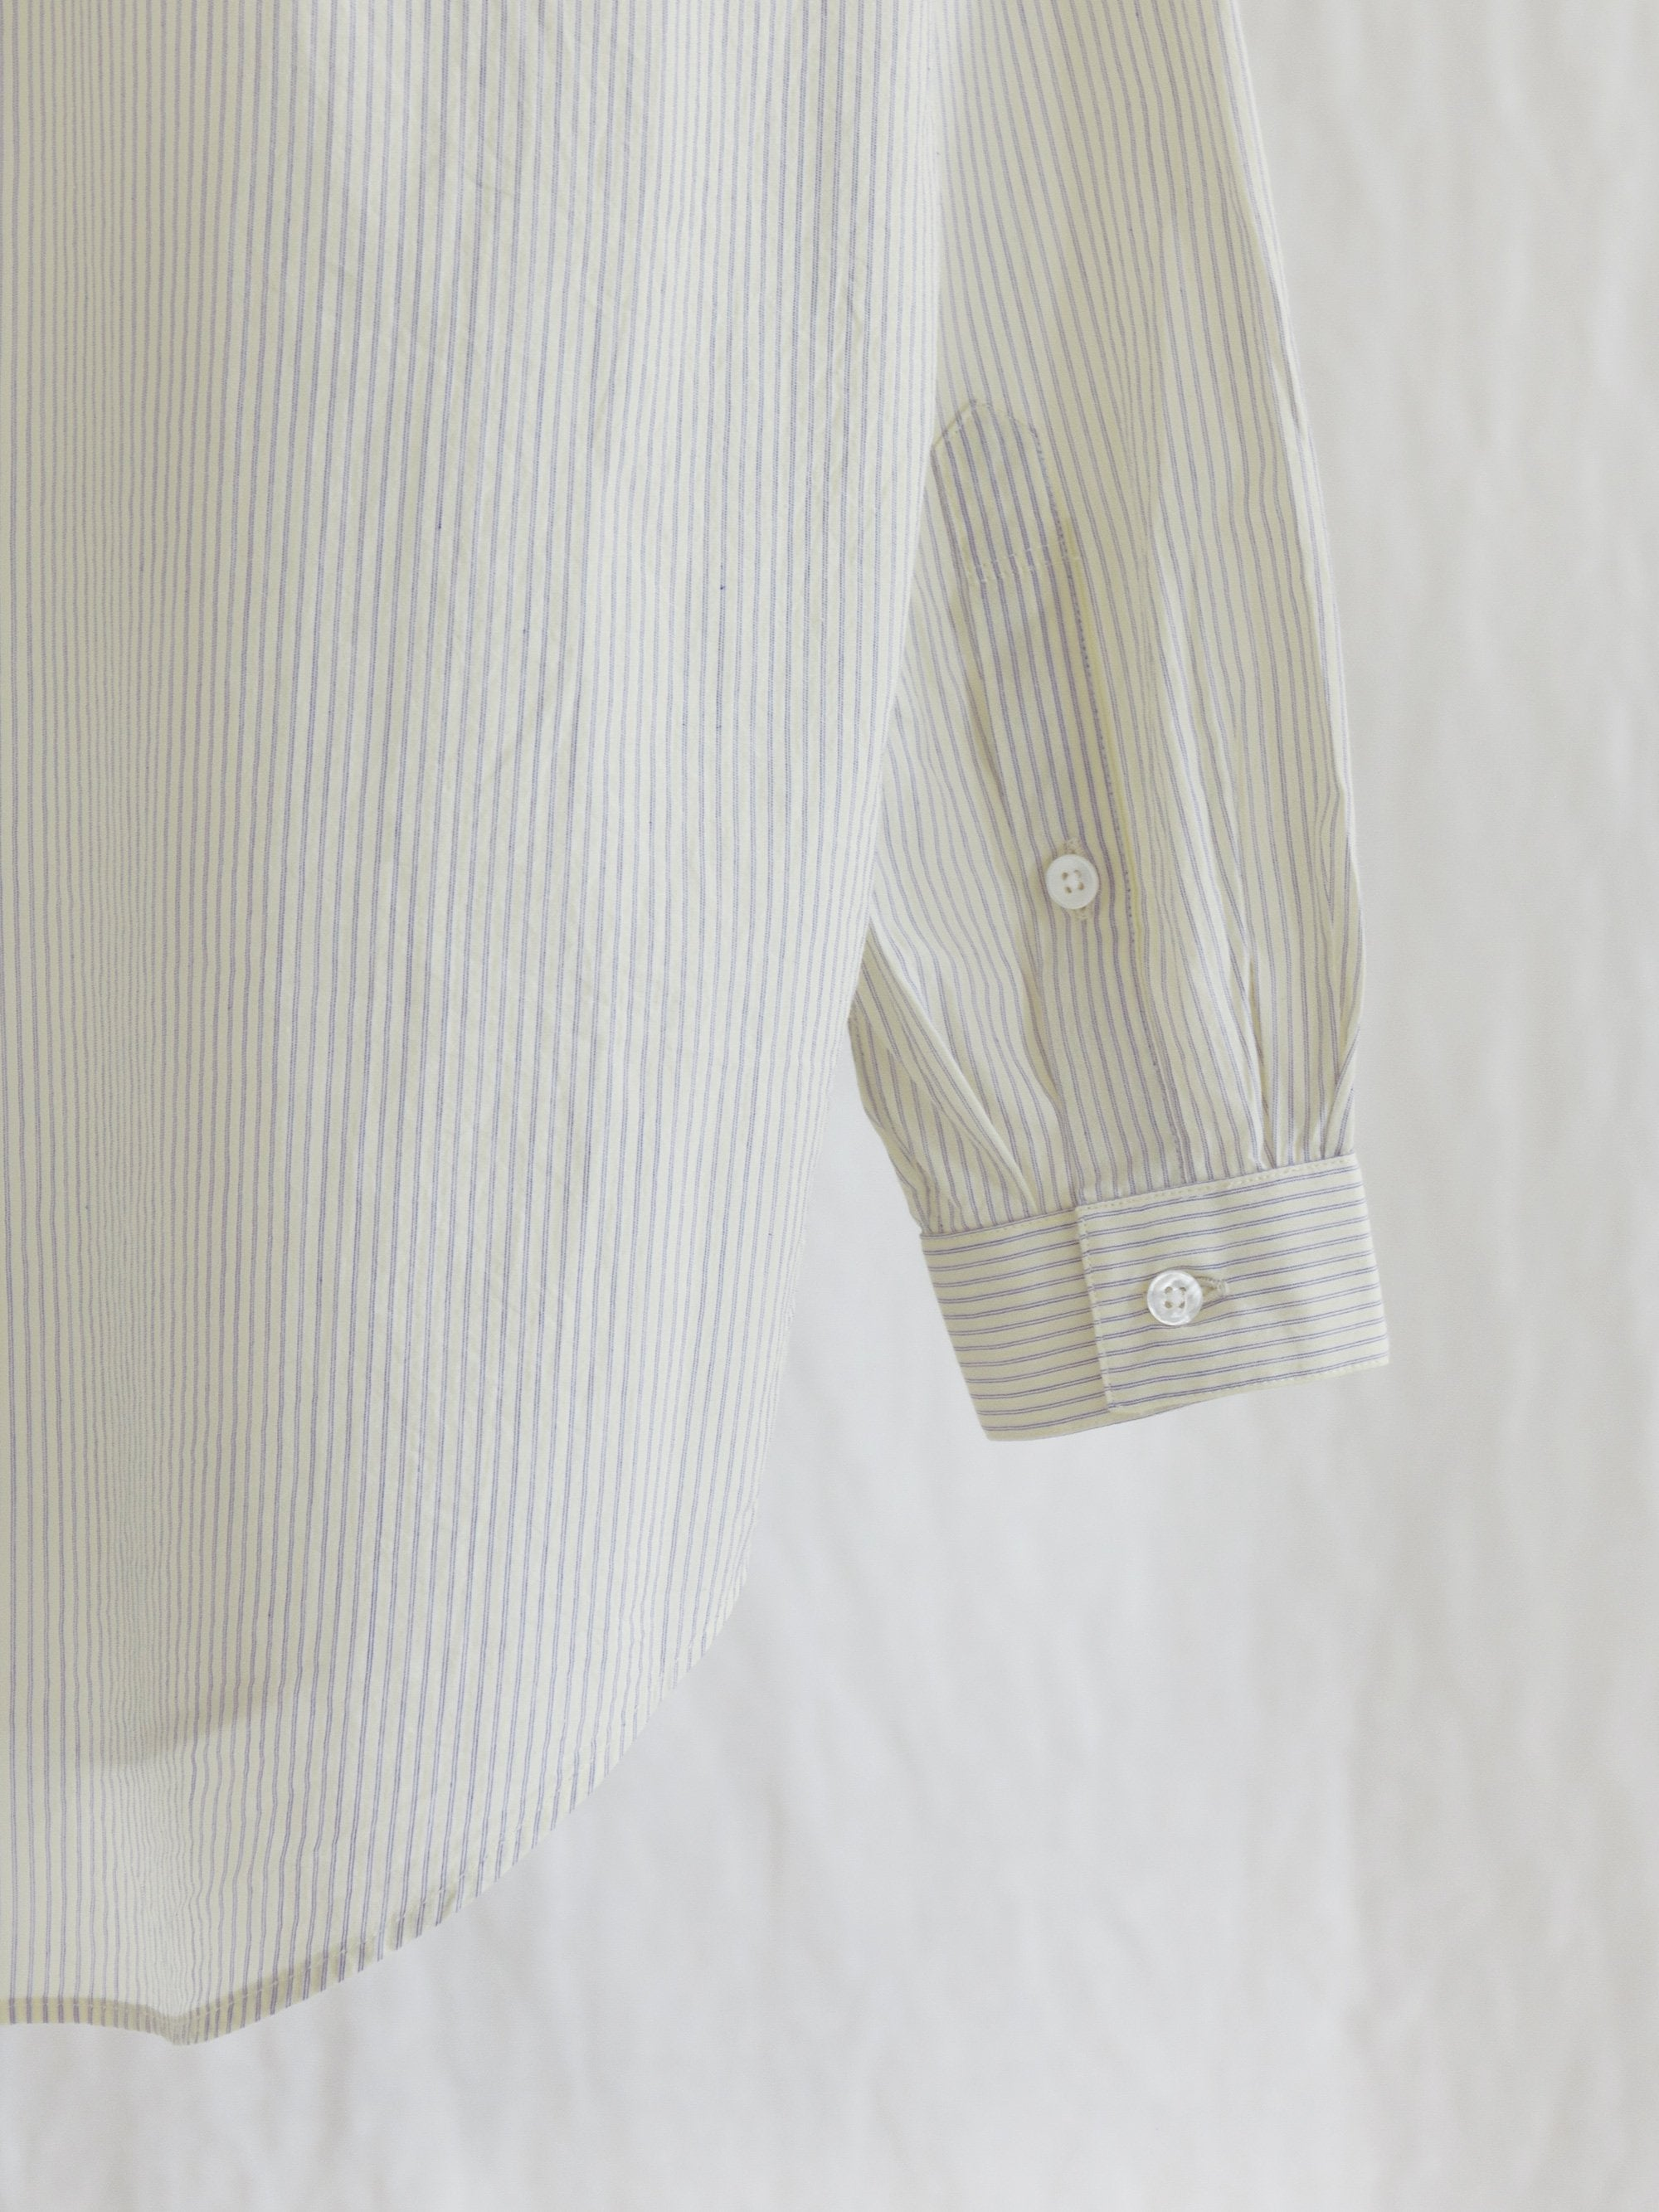 Namu Shop - Phlannel Stripe Poplin Regular Collar Shirt